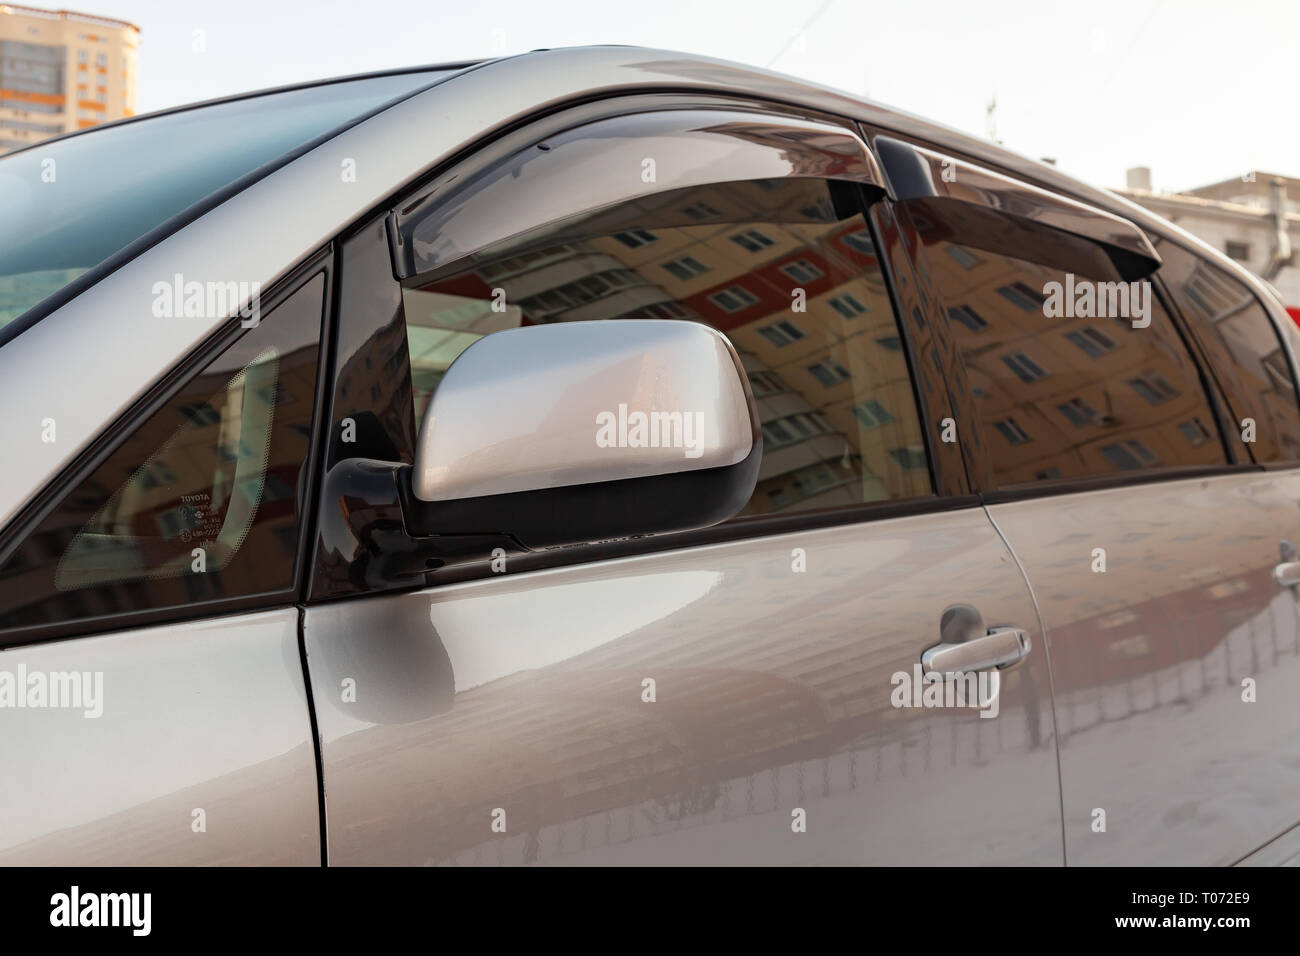 Novosibirsk, Russia - 03.10.2019: View of side rear view mirror and doors deflectors Toyota Ipsum last generation in silver color after cleaning befor - Stock Image